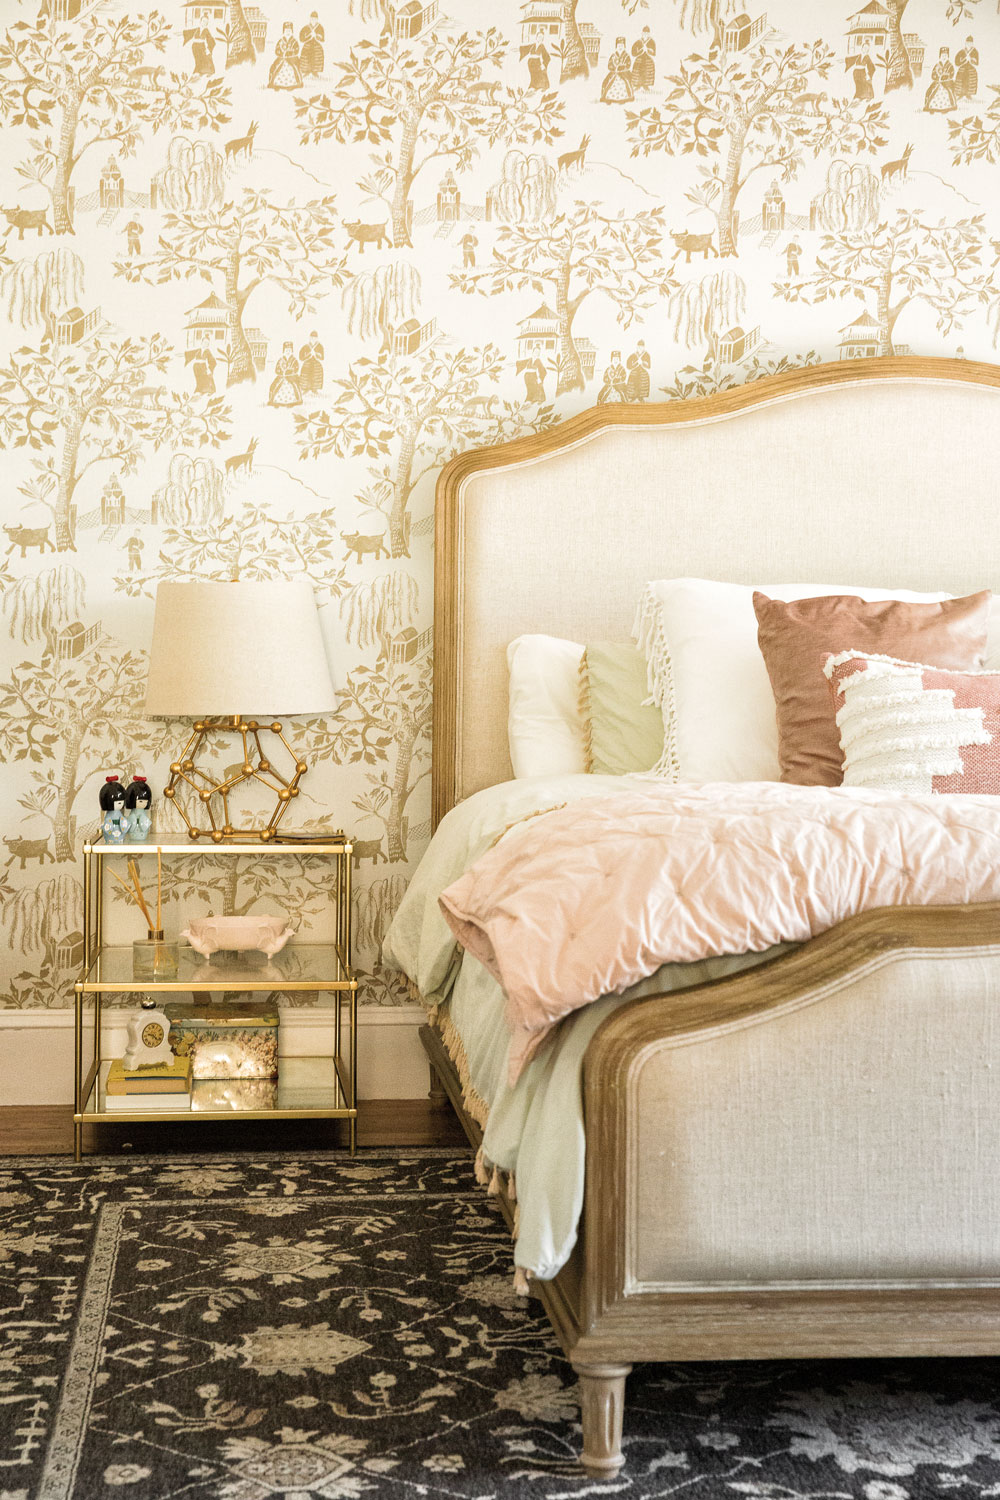 Toile wallpaper adorns a master bedroom accent wall. A metal lamp and nightstand reference the lines on the Parisian-style bed.